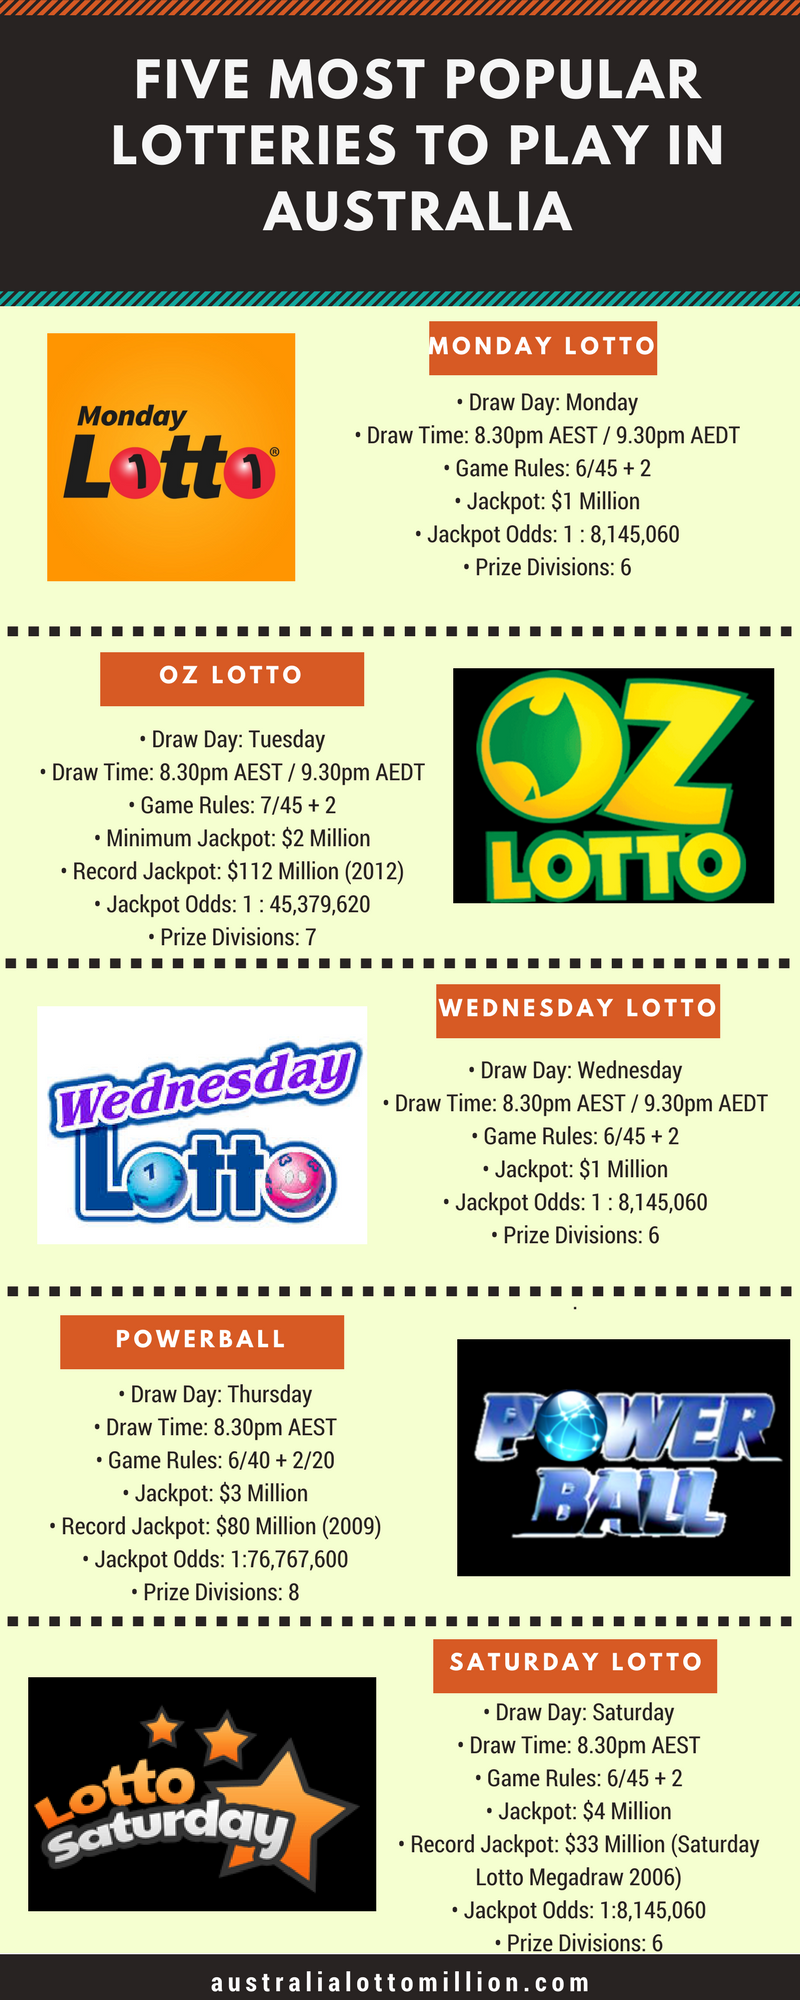 Five most popular lotteries to play in Australia